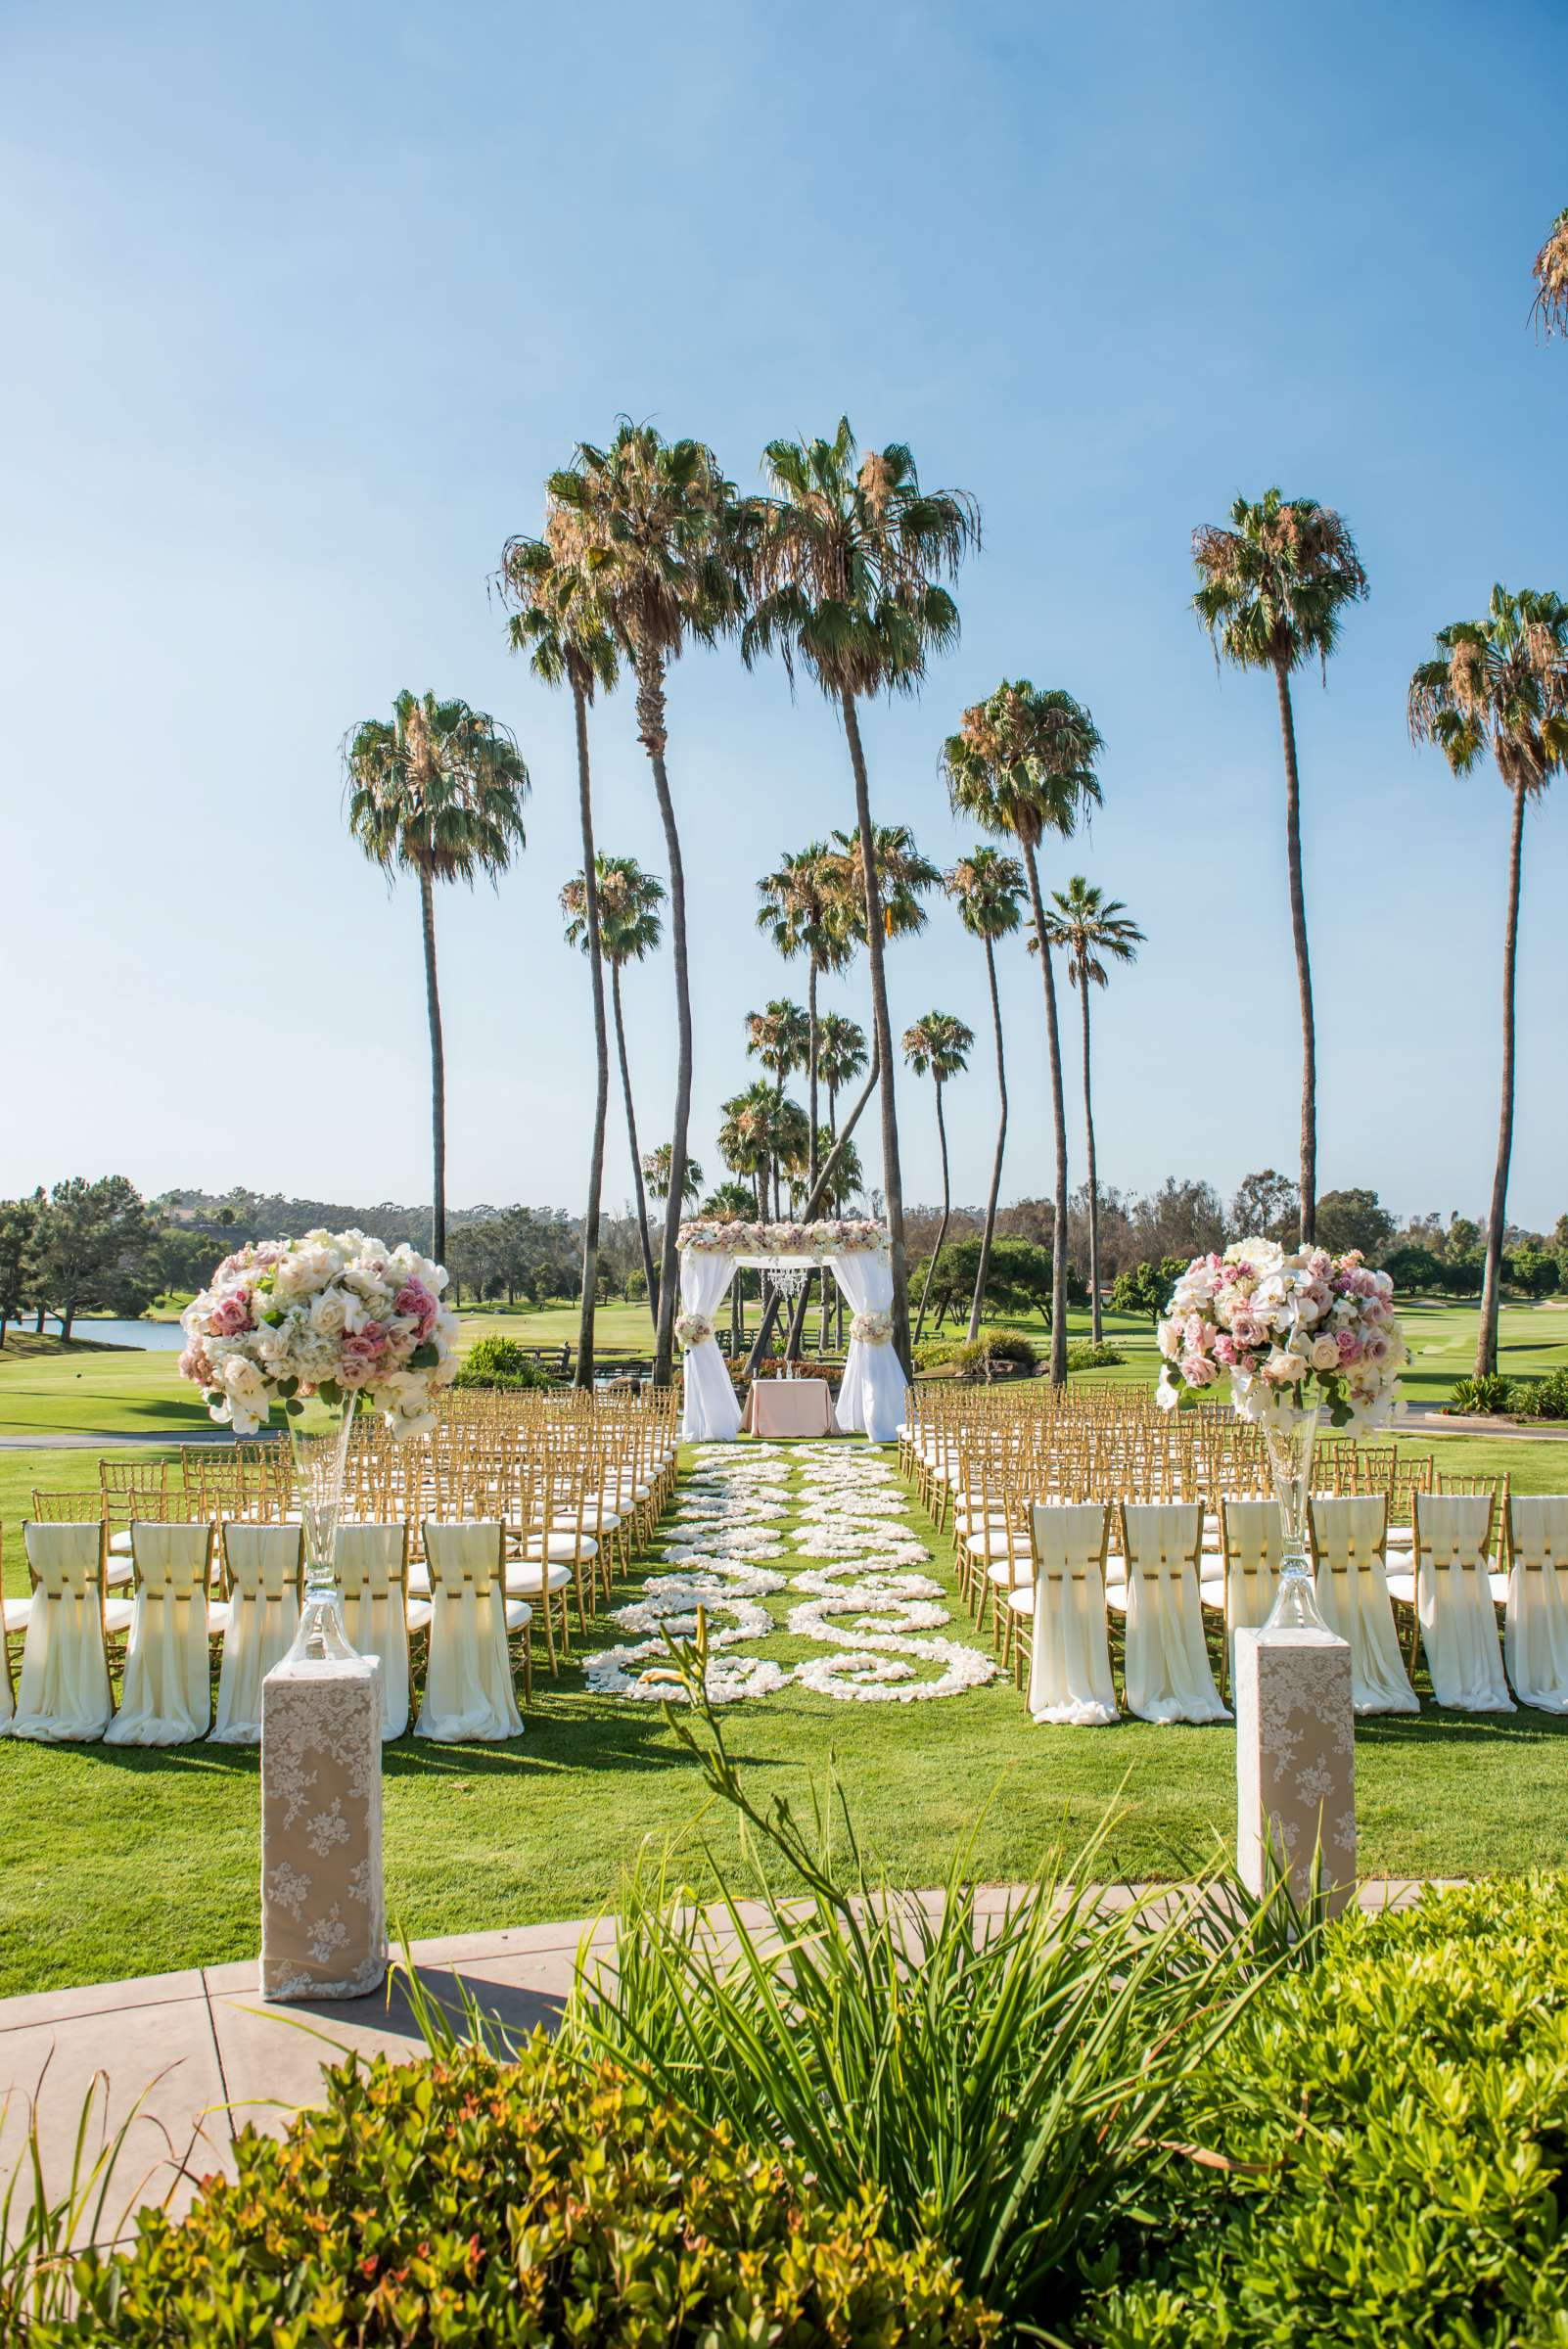 Fairbanks Ranch Country Club Wedding coordinated by Monarch Weddings, Gabriella and Kyle Wedding Photo #11 by True Photography